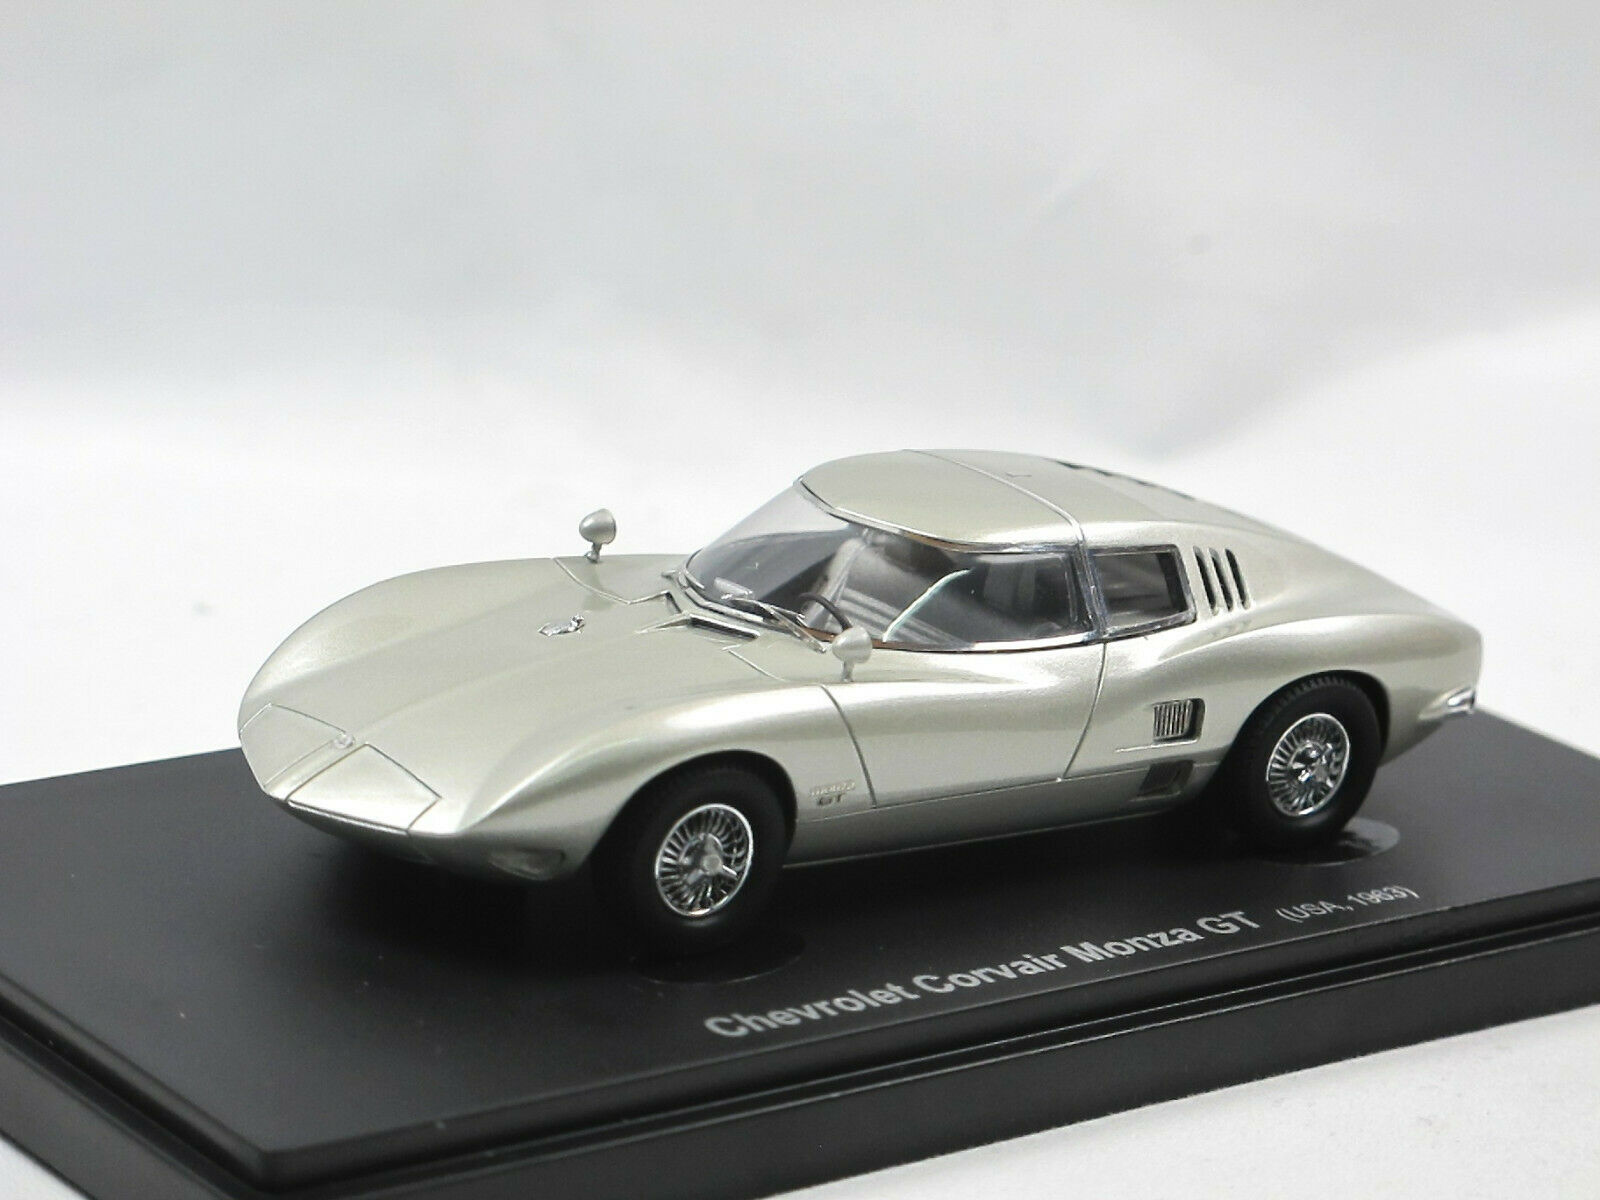 negozio outlet Avenue 43 - - - 1963 CHEVROLET CORVAIR MONZA GT-argentooO - 1 43 autocult Limited  comprare sconti